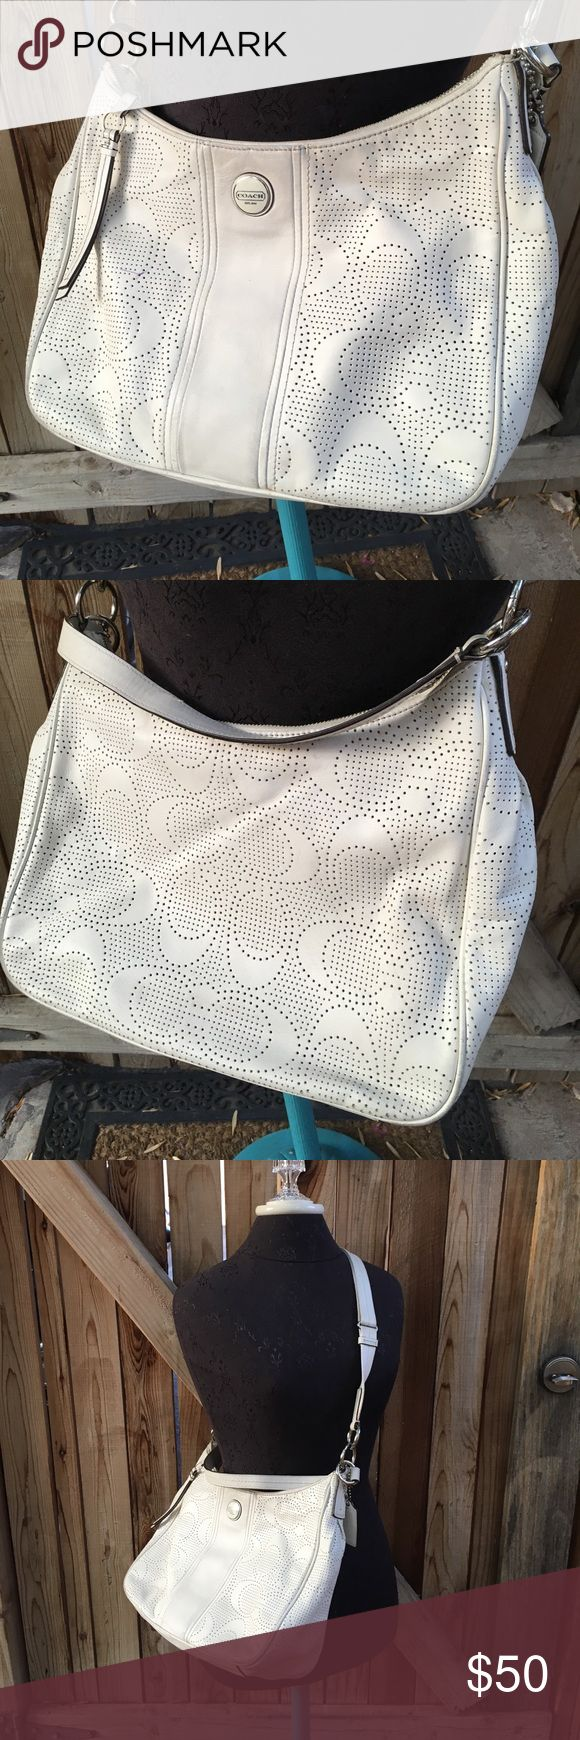 Coach Perforated Shoulder Bag Coach/White leather/2 straps on purse shoulder & Crossbody (can be removed) Perforated C logo, Measures 13 x 11 bag does show signs of wear. Free of tears but does have a pen mark at the front please see photos. Inside of Bag has been cleaned, but does have signs of nail polish spots & pen marks. Bag is still in overall good condition for use. Coach Bags Shoulder Bags